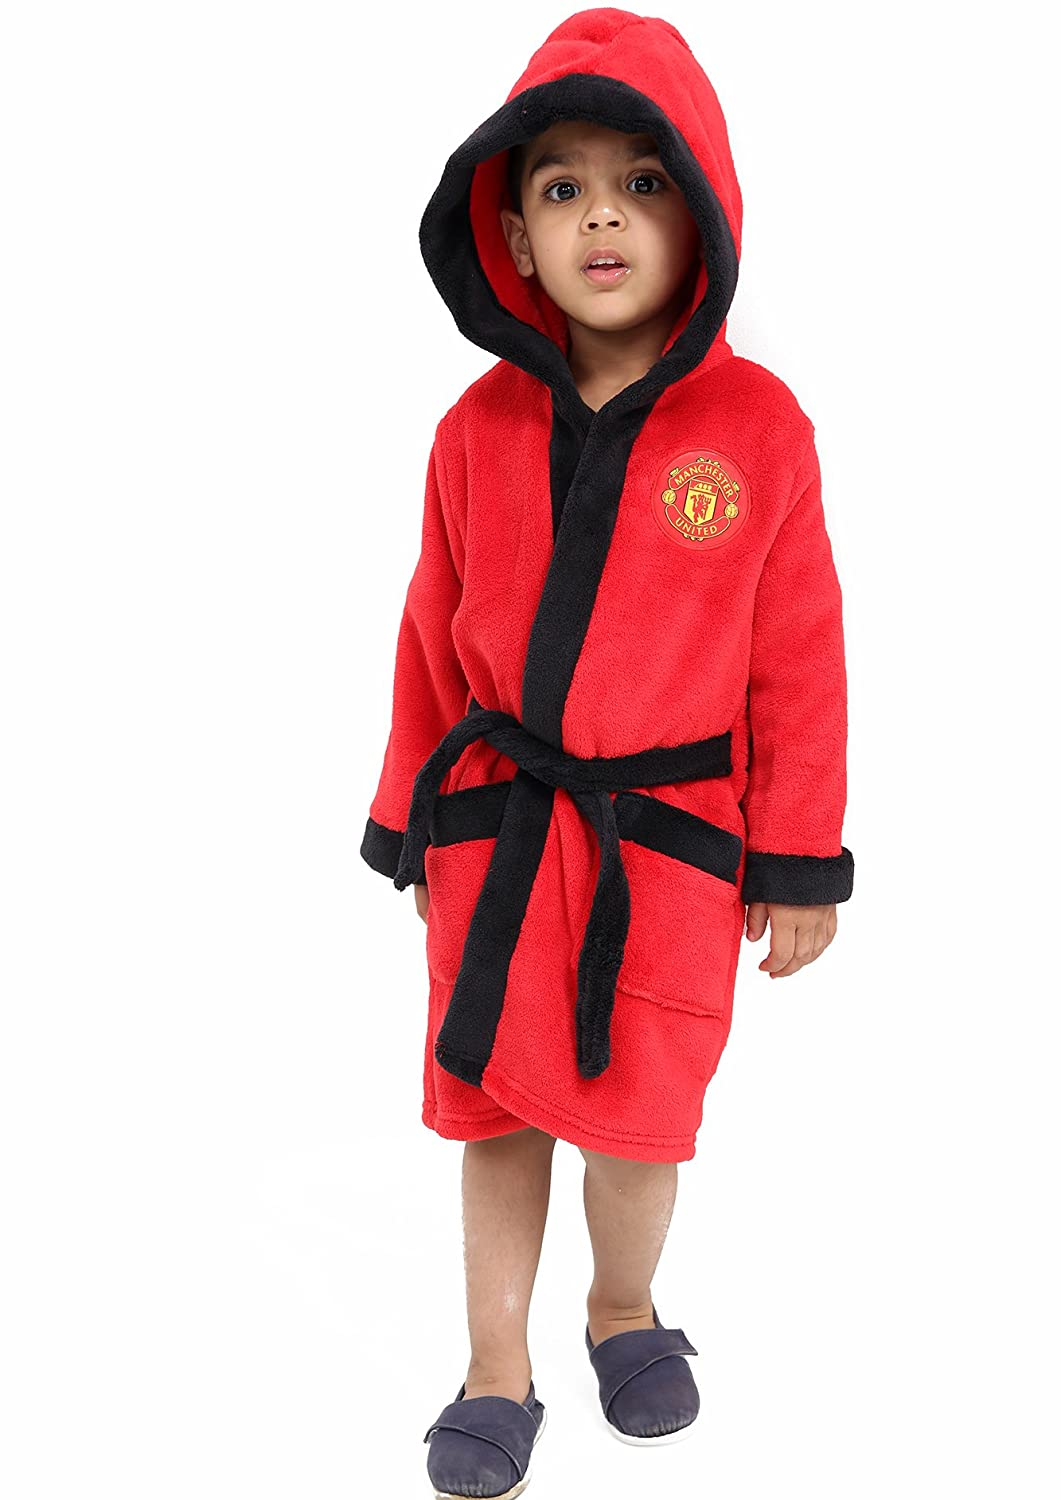 F4S® Boy's Manchester United Football Club Soft Fleece Dressing Gown Bath Robe Ages 3-12